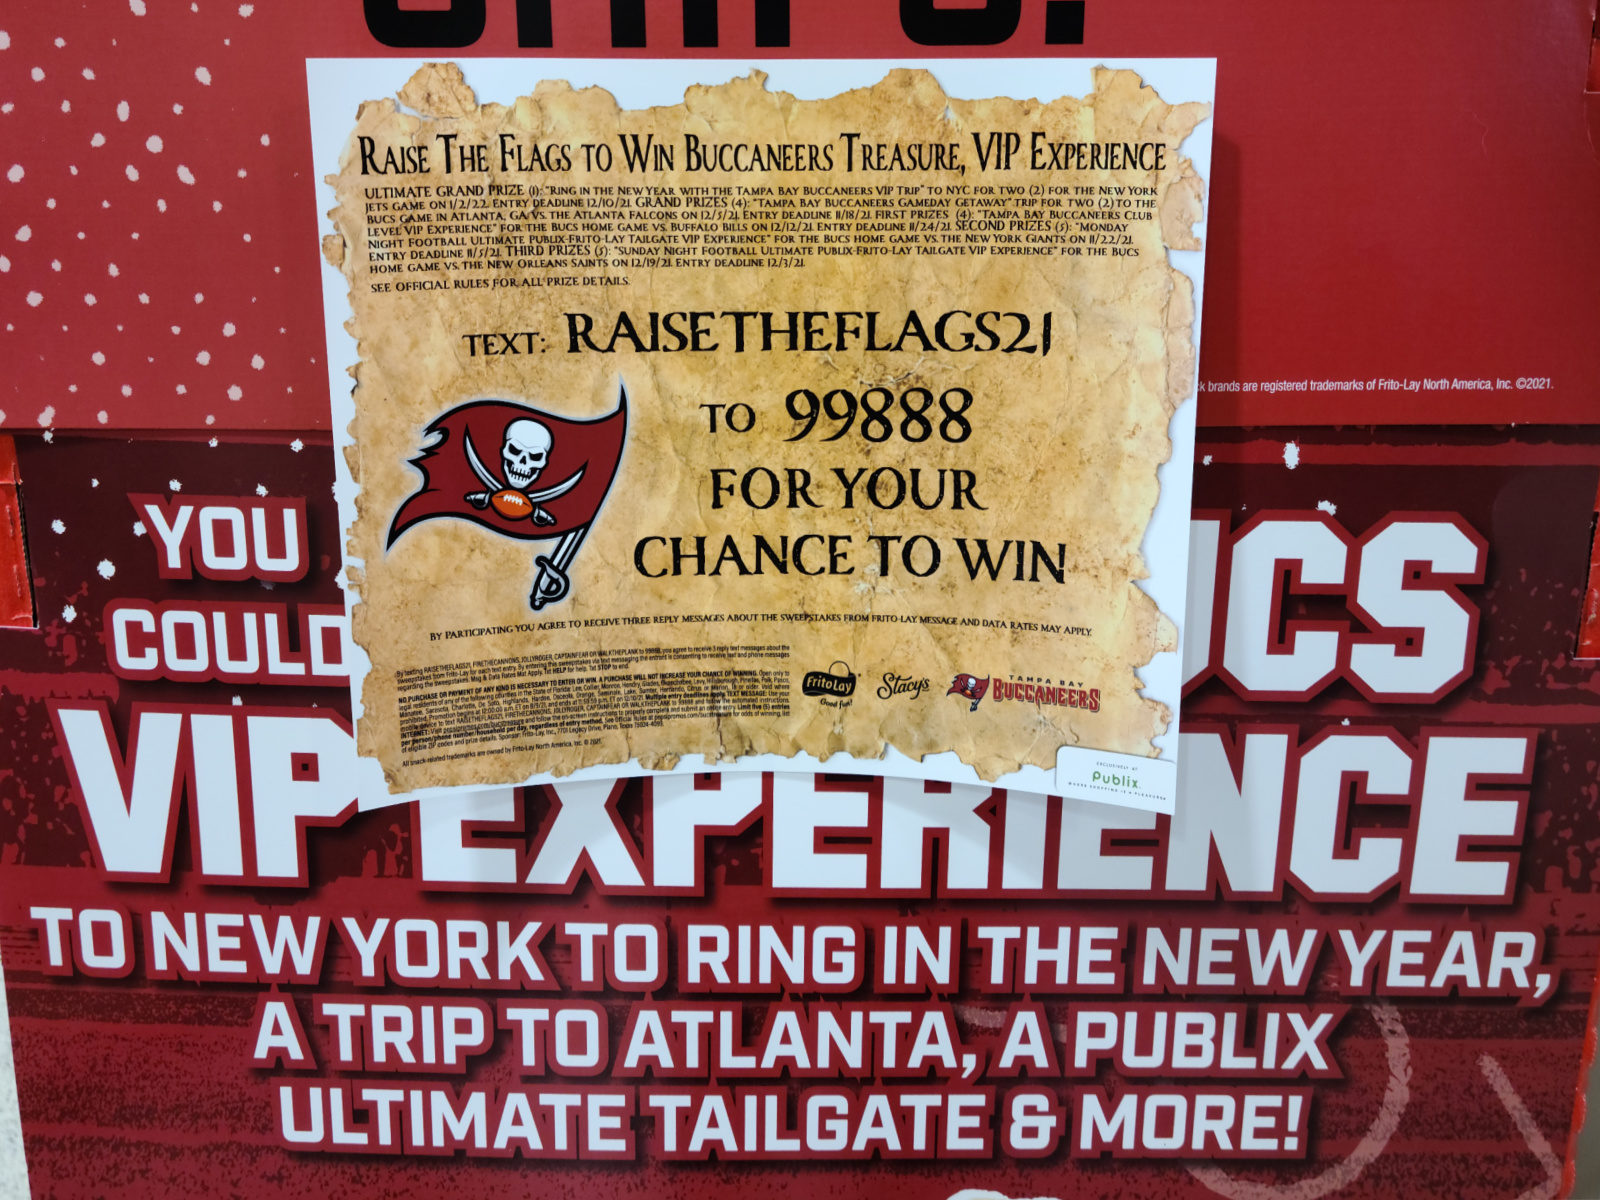 Tampa Bay Area Publix Shoppers - New Bucs Sweepstakes! on I Heart Publix